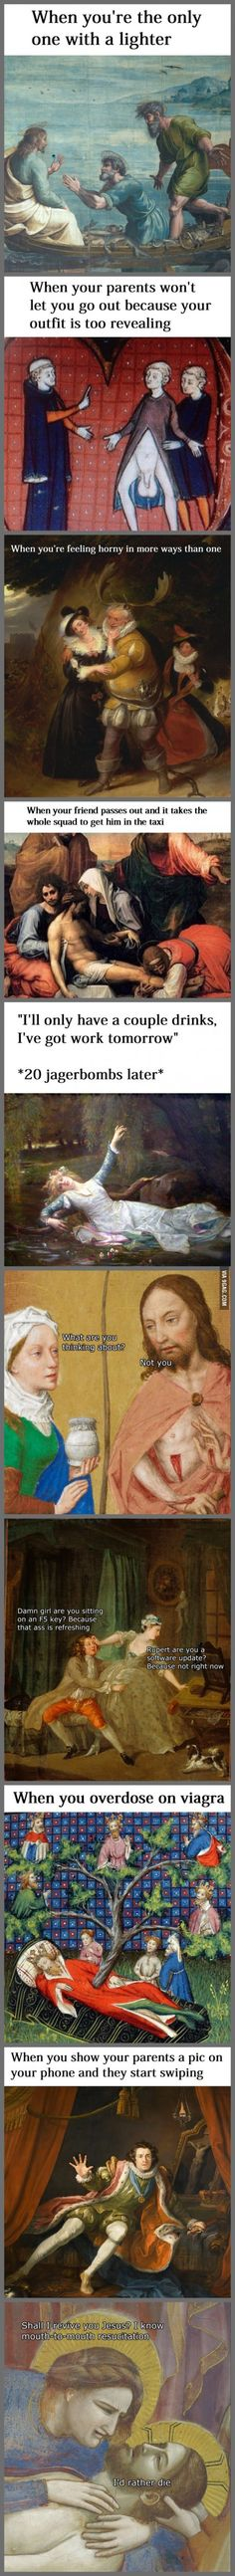 Classical Art Memes Latest (Part-16)